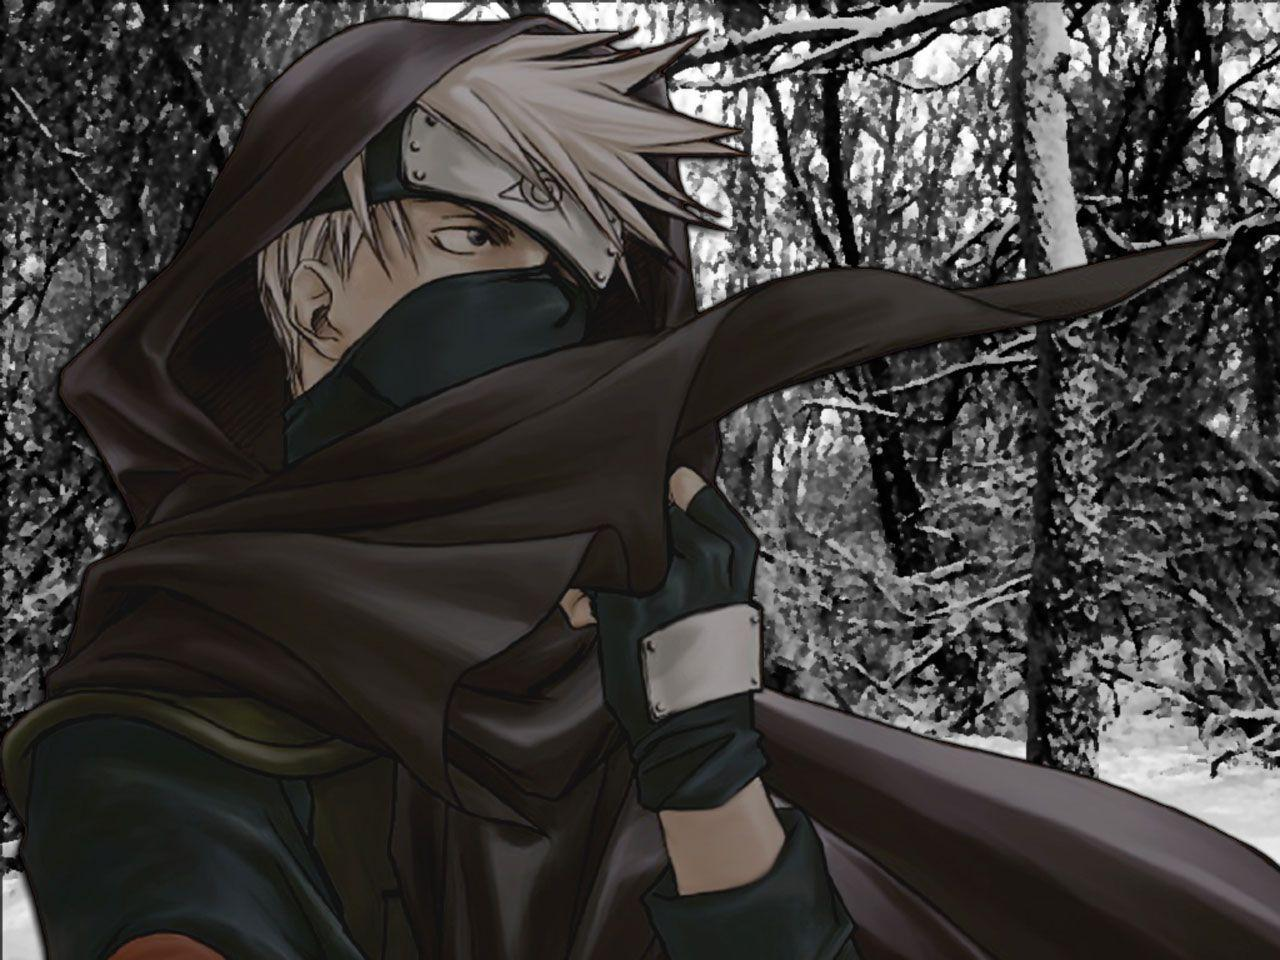 Kakashi wallpapers terbaru 2015 wallpaper cave - Kakashi sensei wallpaper ...